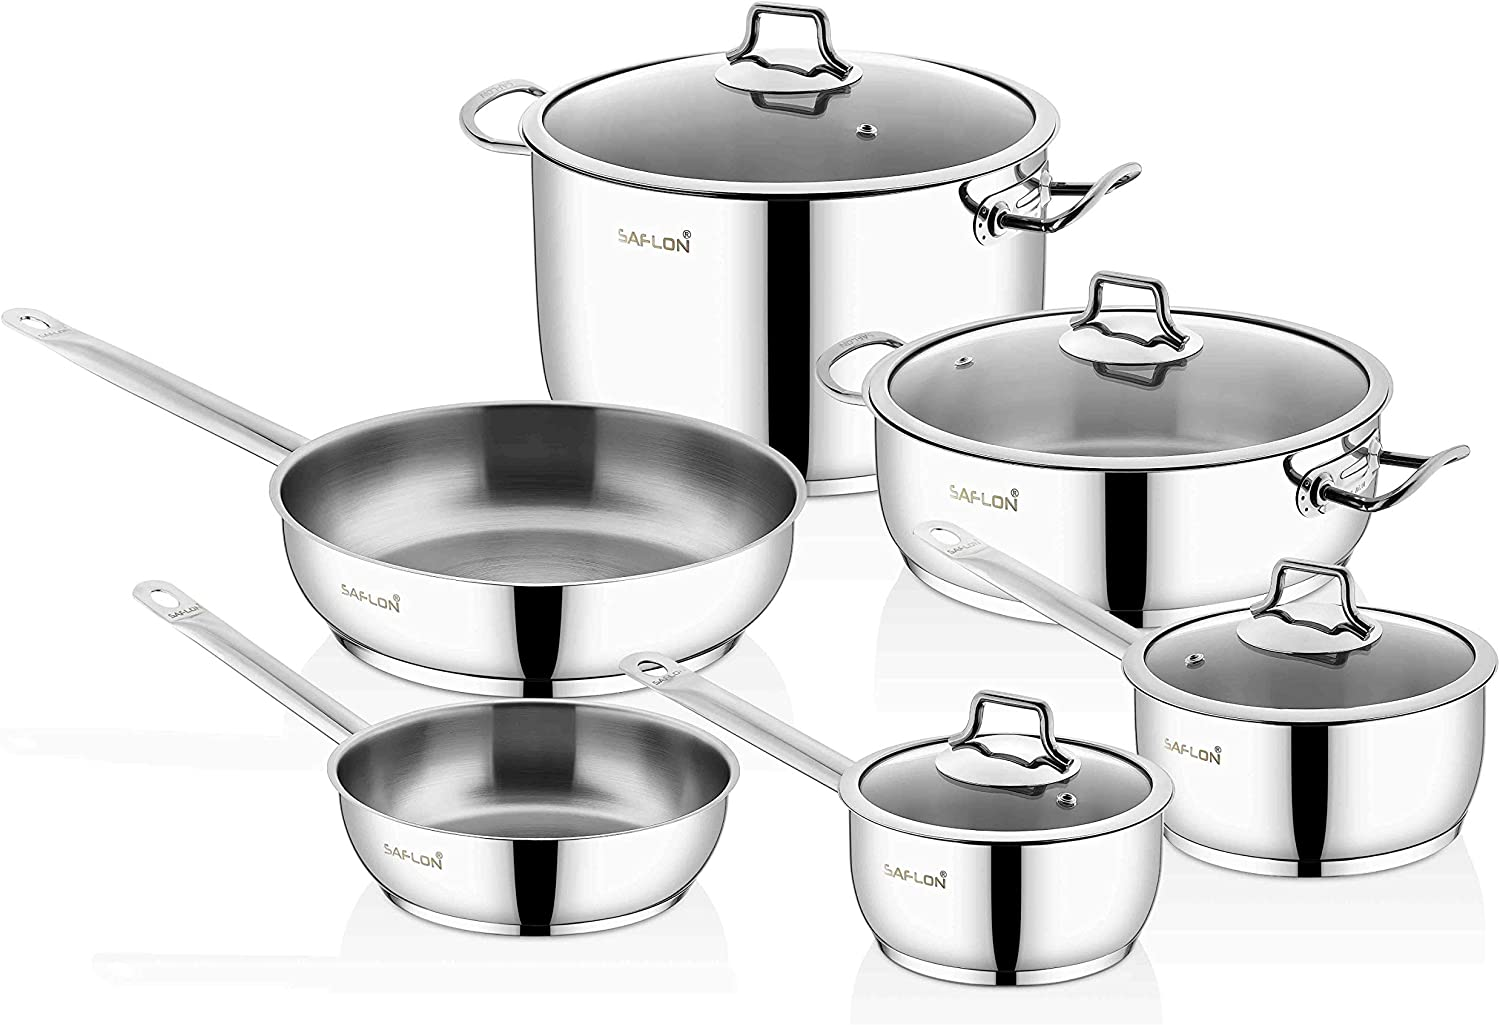 Saflon Stainless Steel Tri-Ply Capsulated Bottom 10 Piece Cookware Set, Induction Ready, Oven and Dishwasher Safe